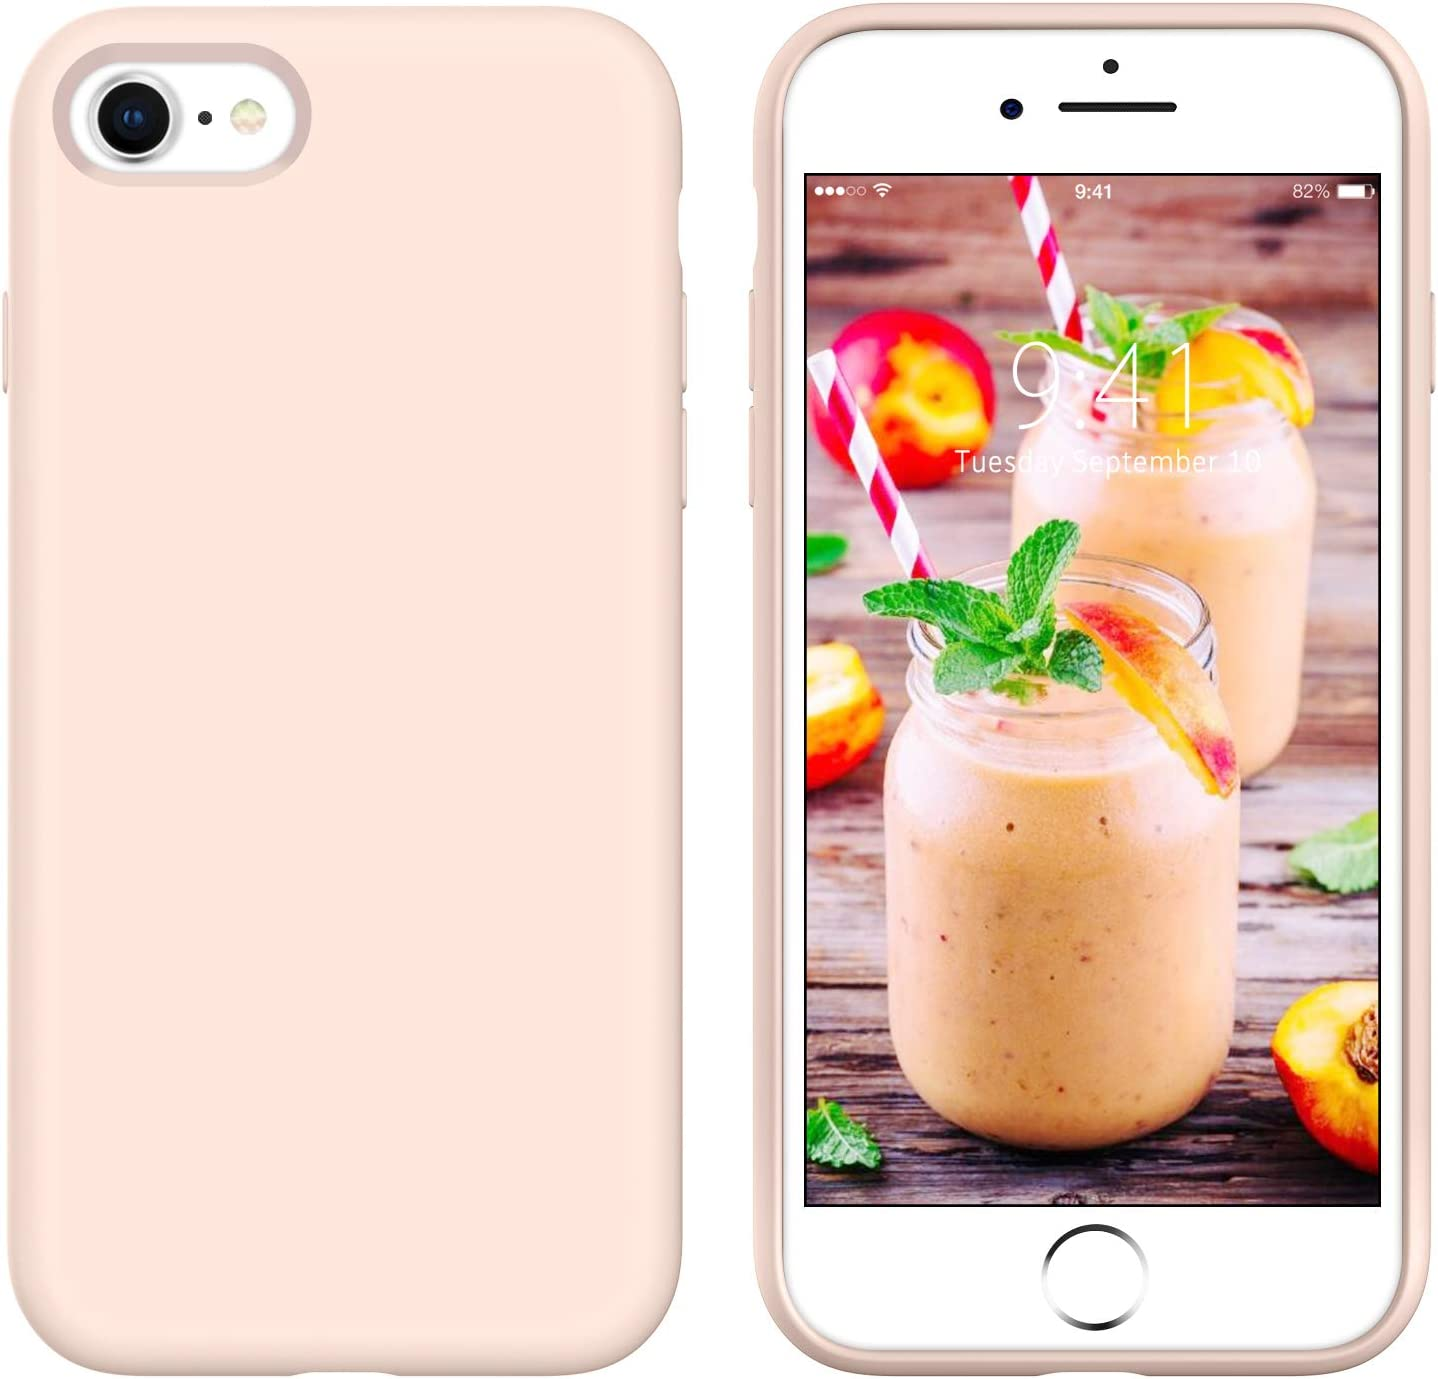 GUAGUA iPhone SE 2020 Case iPhone 8 Case iPhone 7 Case 4.7-inch Liquid Silicone Soft Gel Rubber Slim Microfiber Lining Cushion Texture Cover Protective Case for iPhone 8/7/SE 2020 Pink